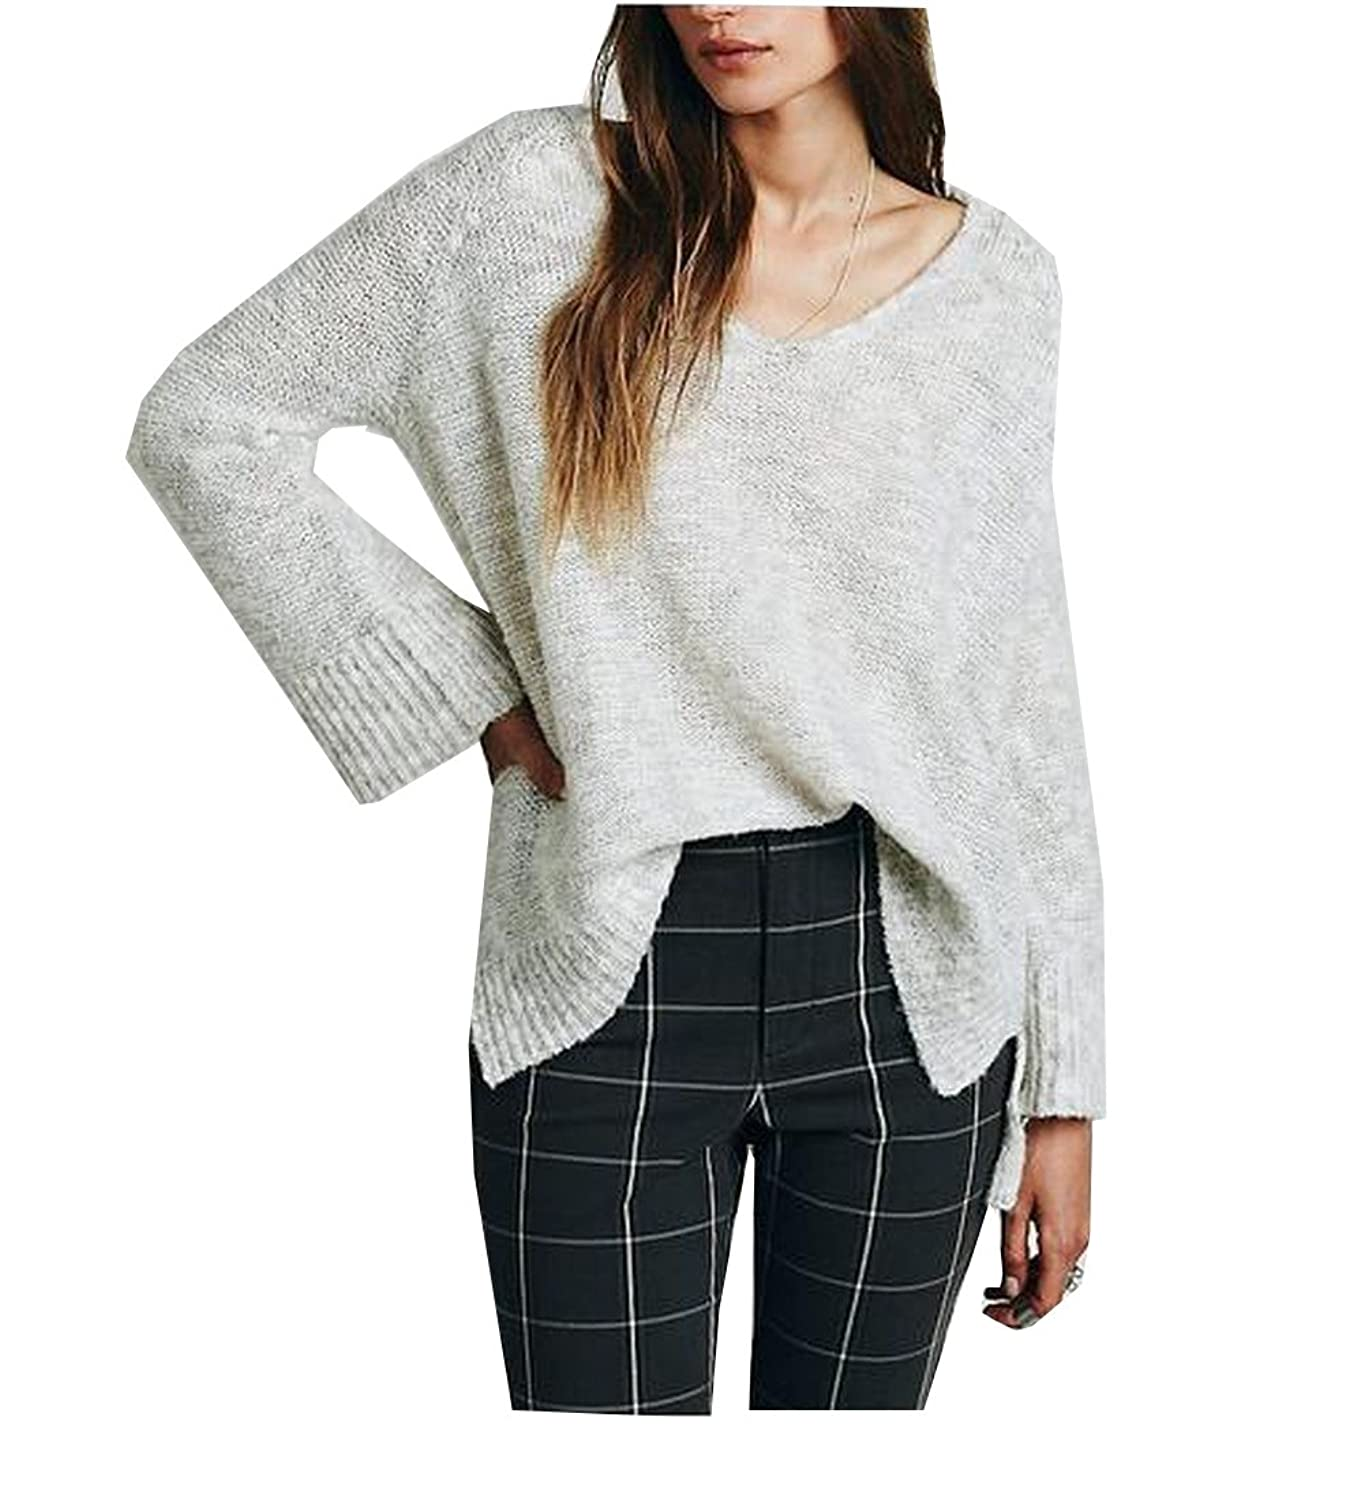 YUNY Womens Raglan Sleeve Pullover V Neck Knitted Sweater